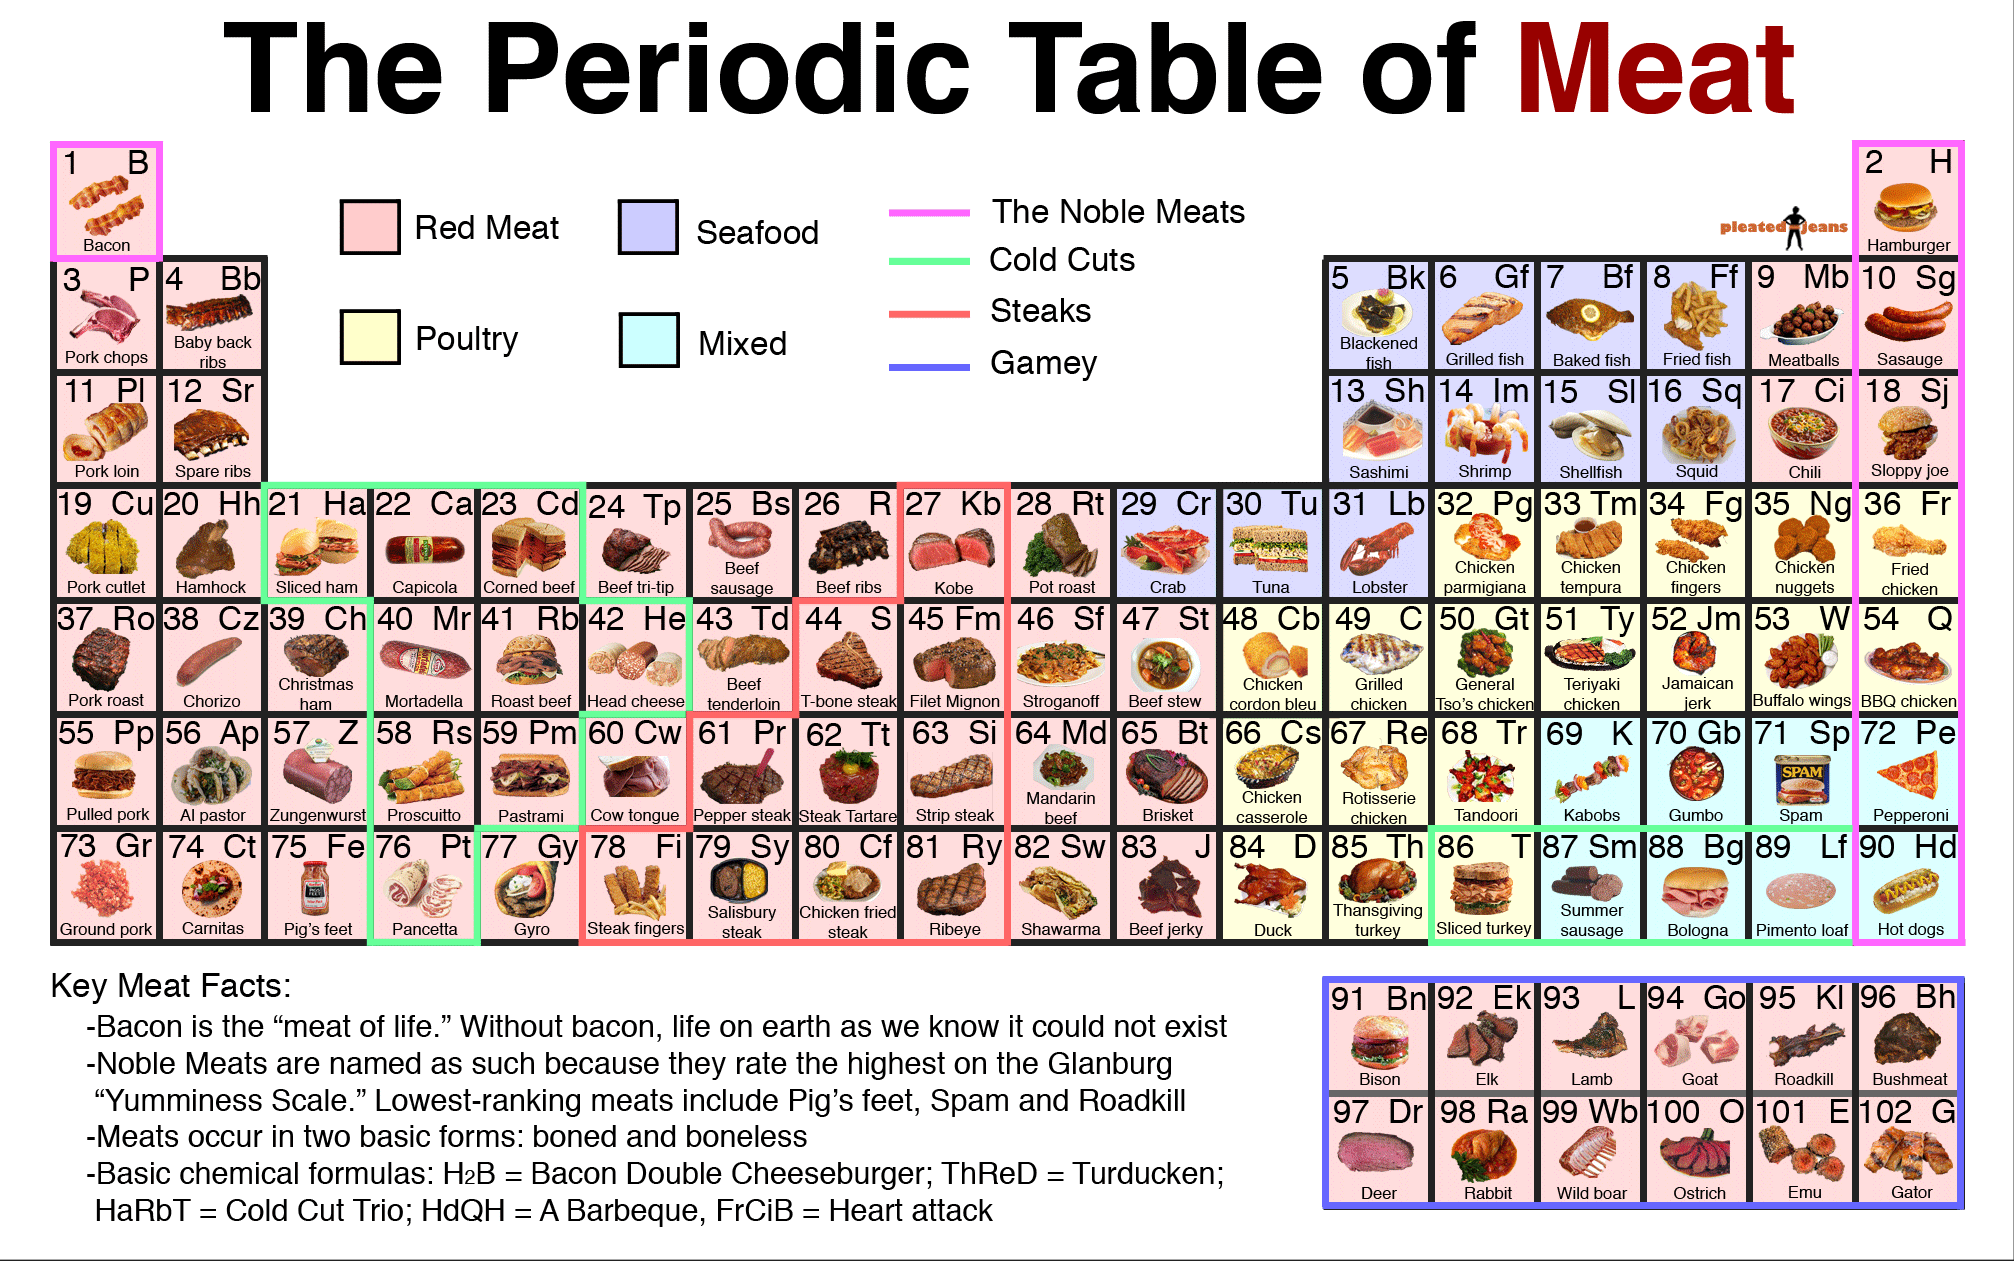 Periodic table puns 2 choice image periodic table images the periodic table of meat ultimate paleo guide periodic table of meat gamestrikefo choice image gamestrikefo Image collections